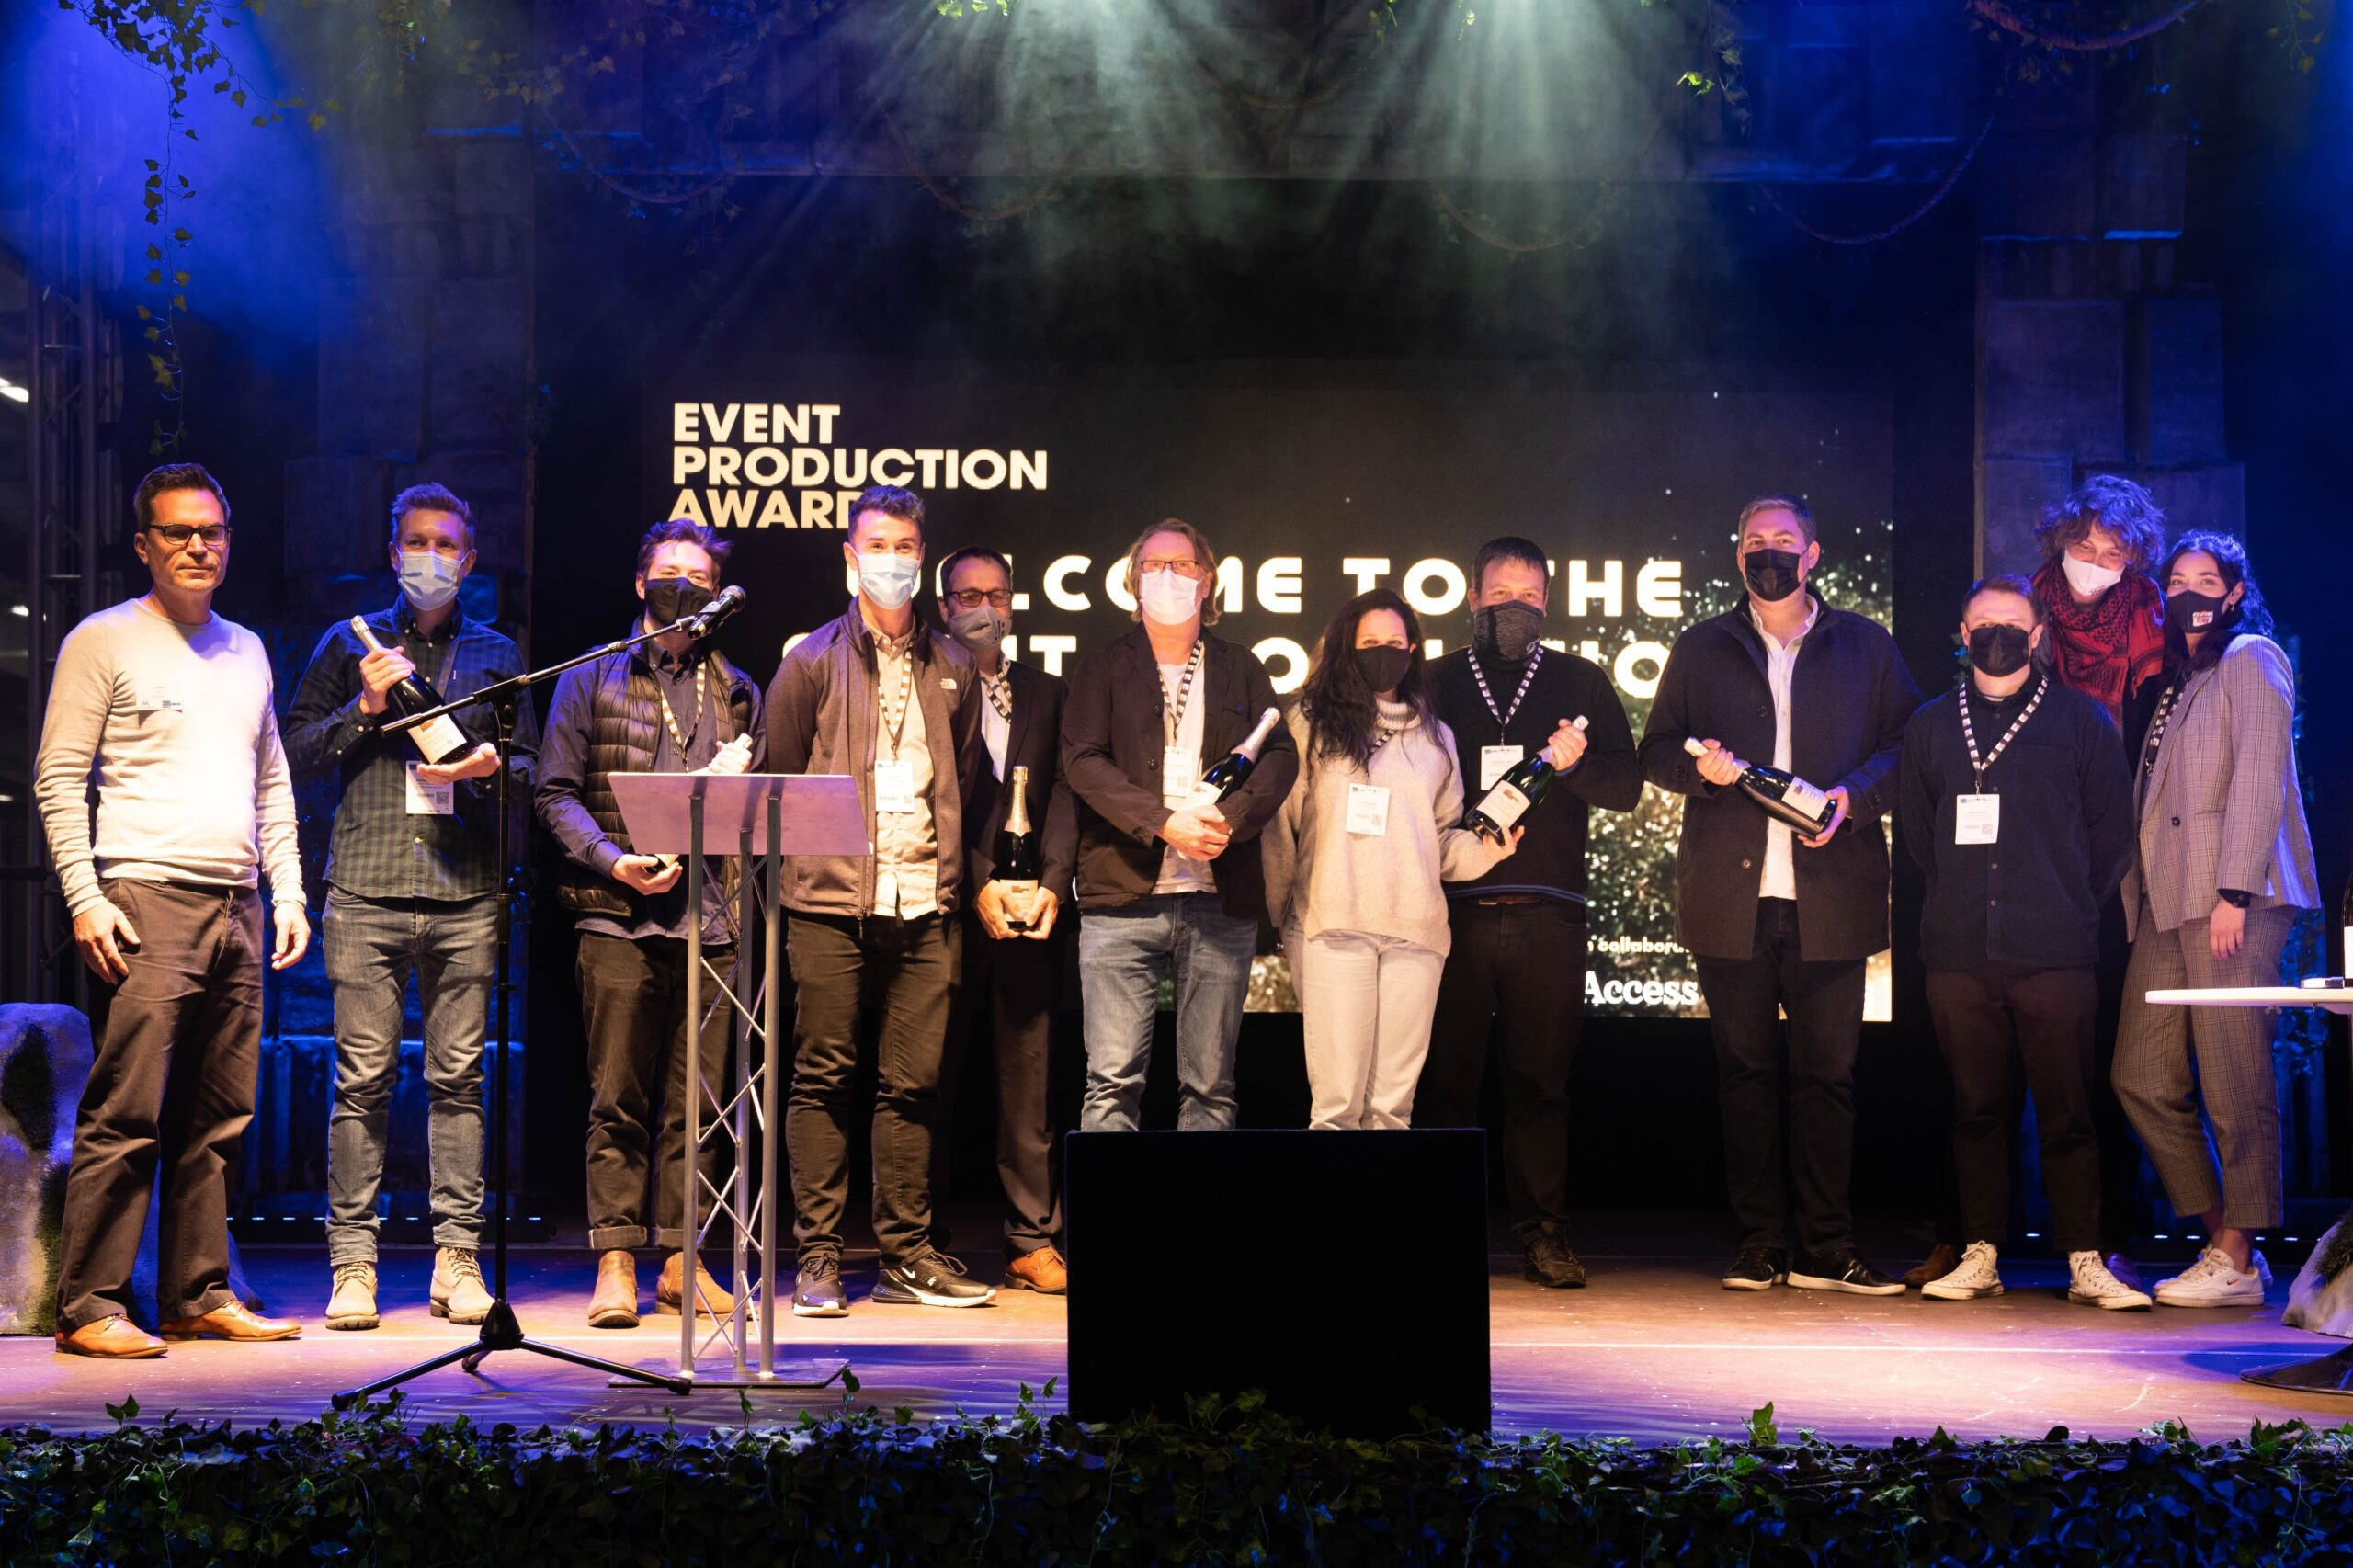 Winners of the EPA's stand on stage each holding a bottle of champagne